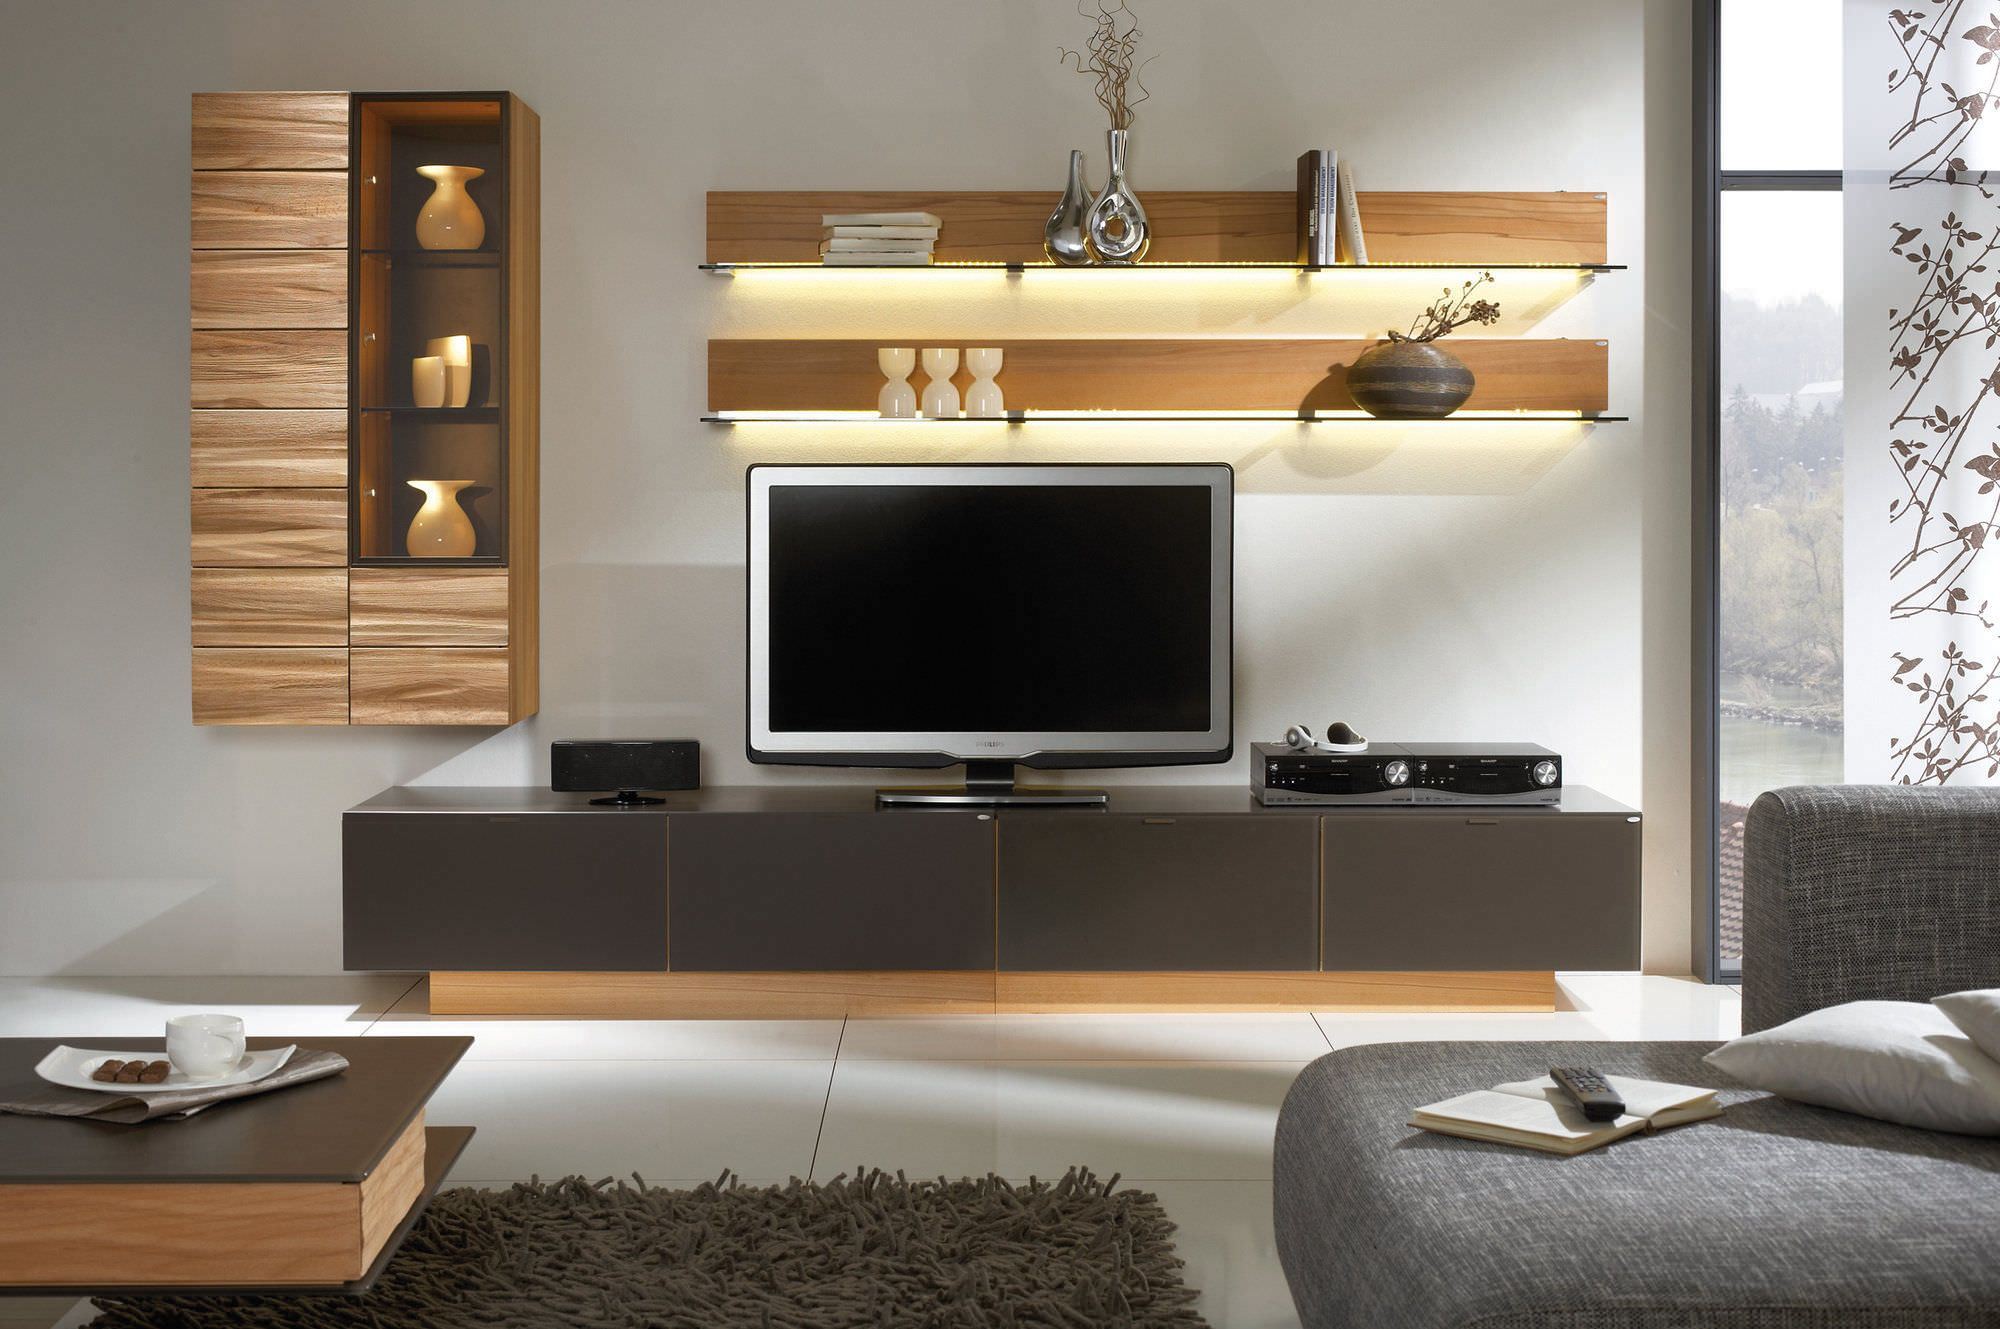 Awesome white brown wood glass cool design contemporary tv for Modern living room wall